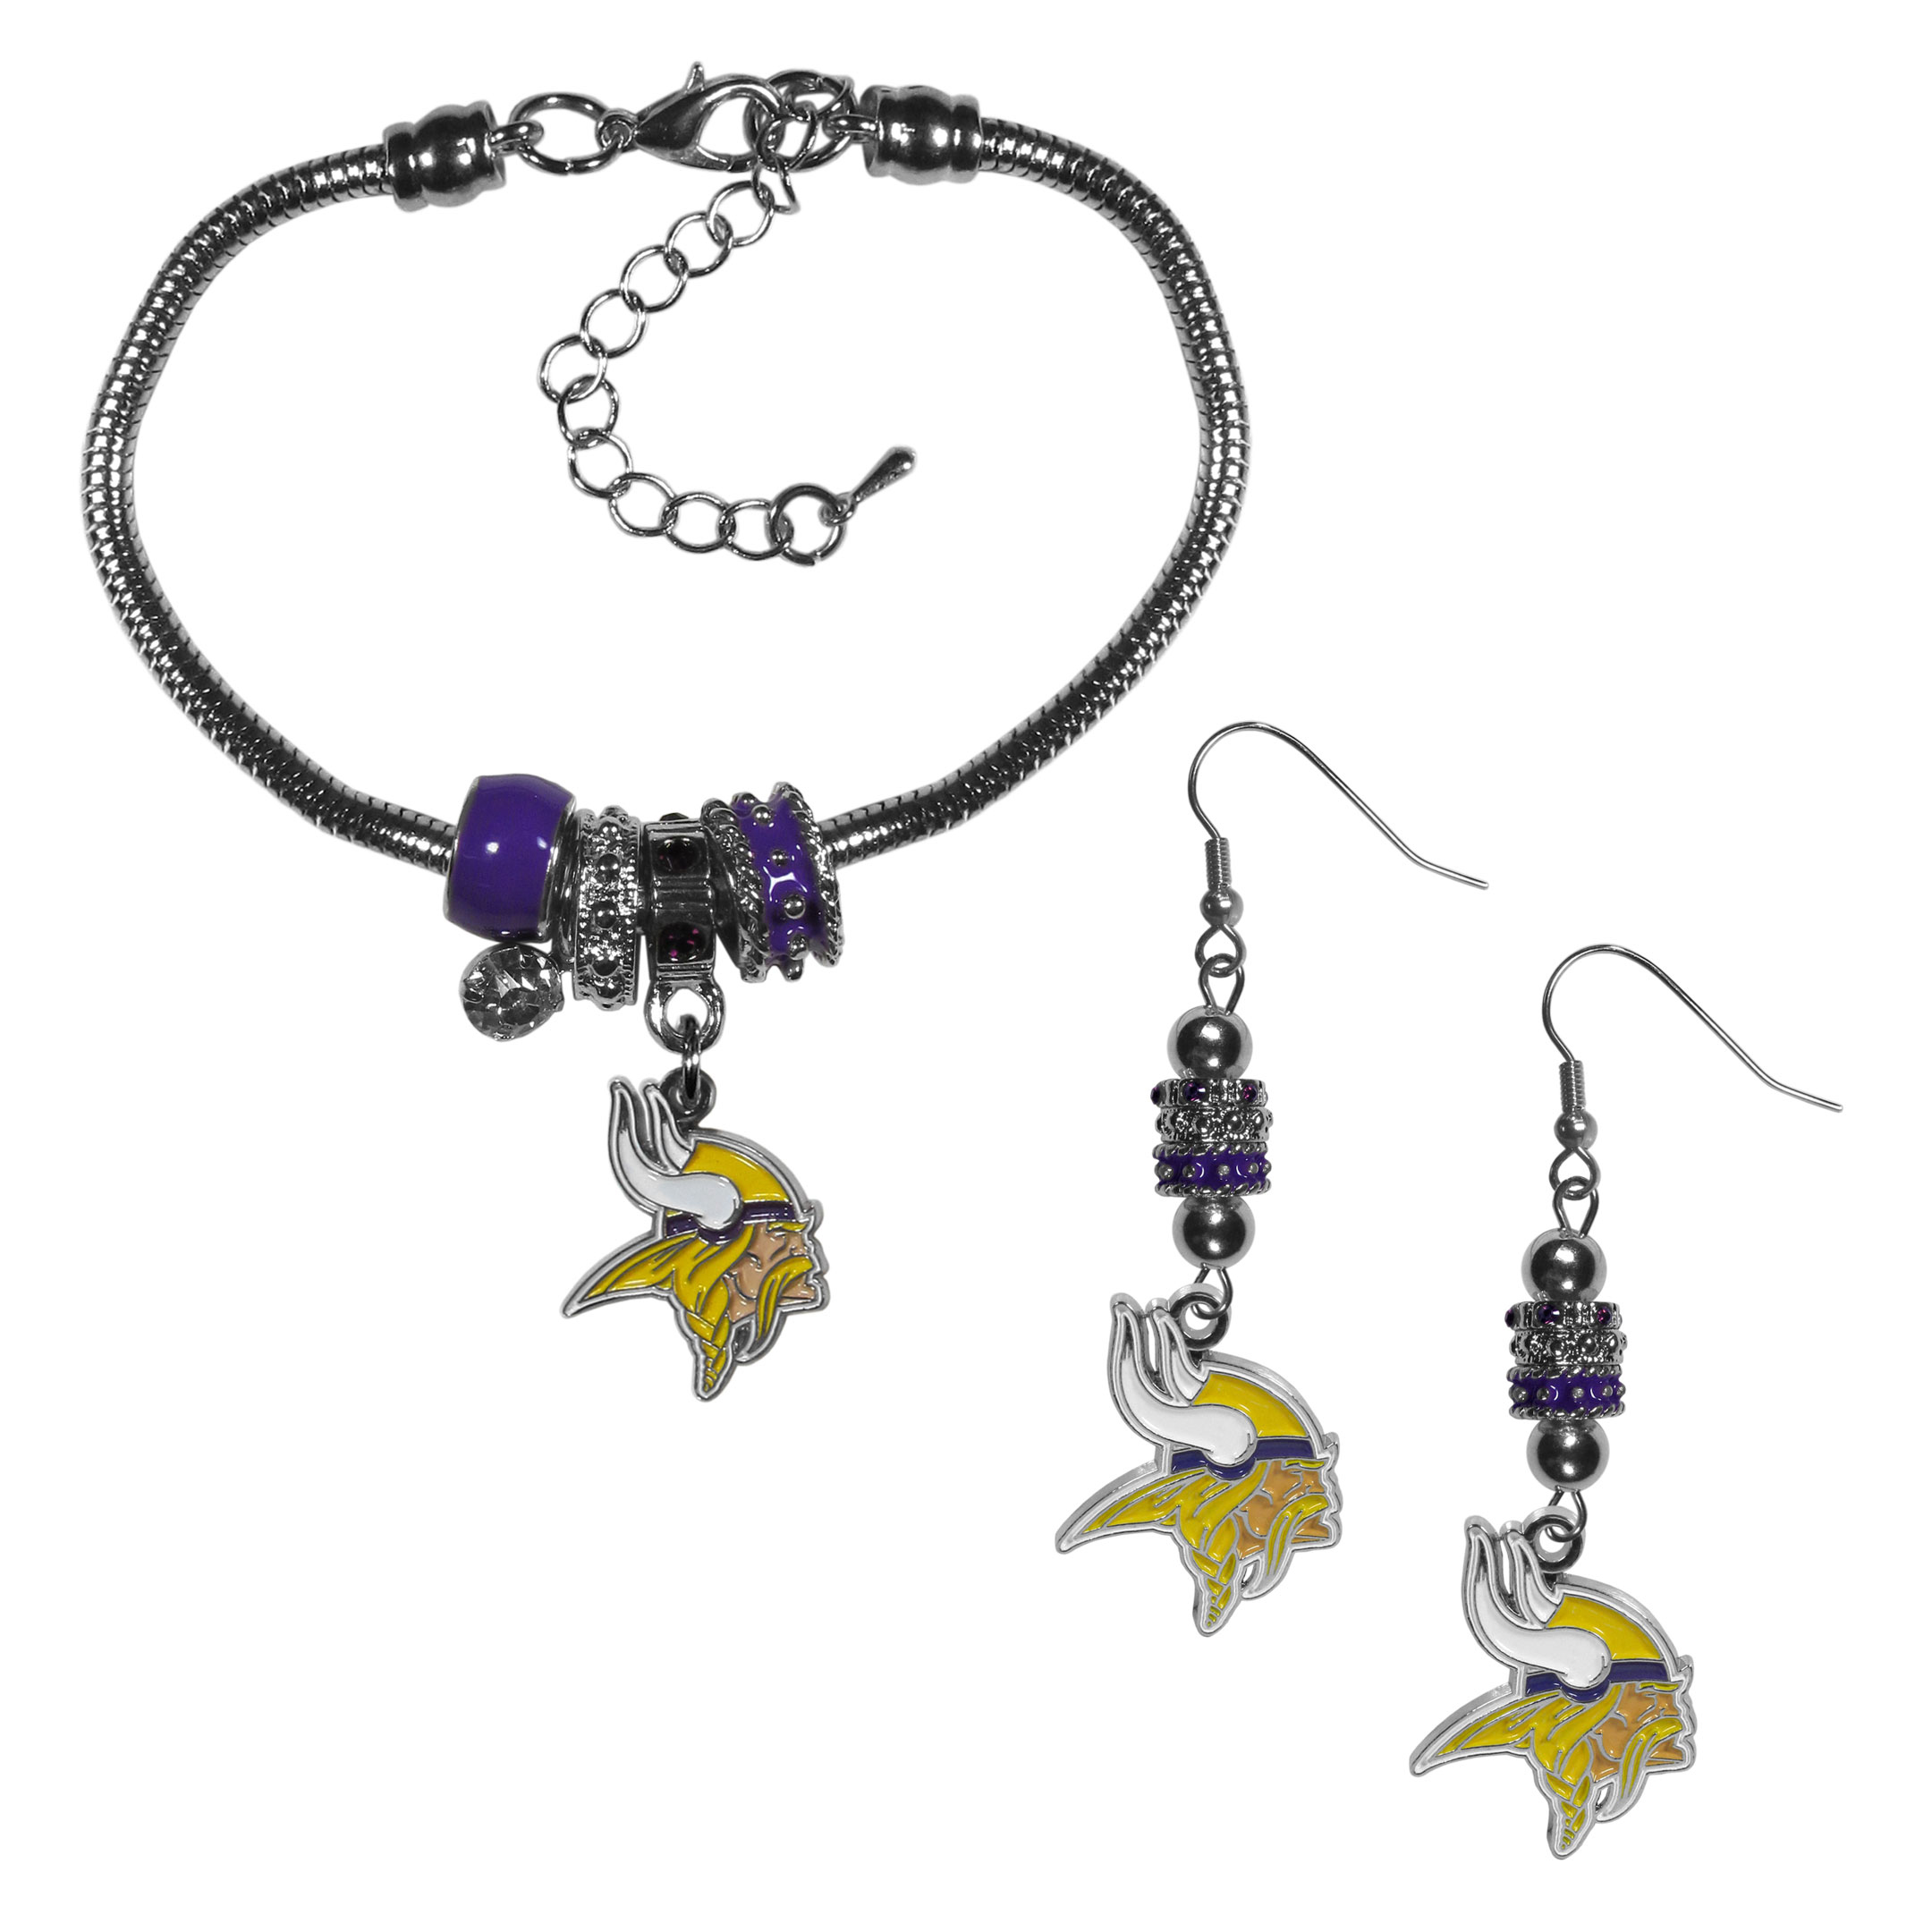 Minnesota Vikings Euro Bead Earrings and Bracelet Set - We combine the popular Euro bead style with your love of the Minnesota Vikings with this beautiful jewelry set that includes earrings and a matching bracelet. The stylish earrings feature hypoallergenic, nickel free fishhook posts and 3 team colored Euro beads and a metal team charm. The matching snake chain bracelet is 7.5 inches long with a 2 inch extender and 4 Euro beads with a rhinestone charm and team charm.